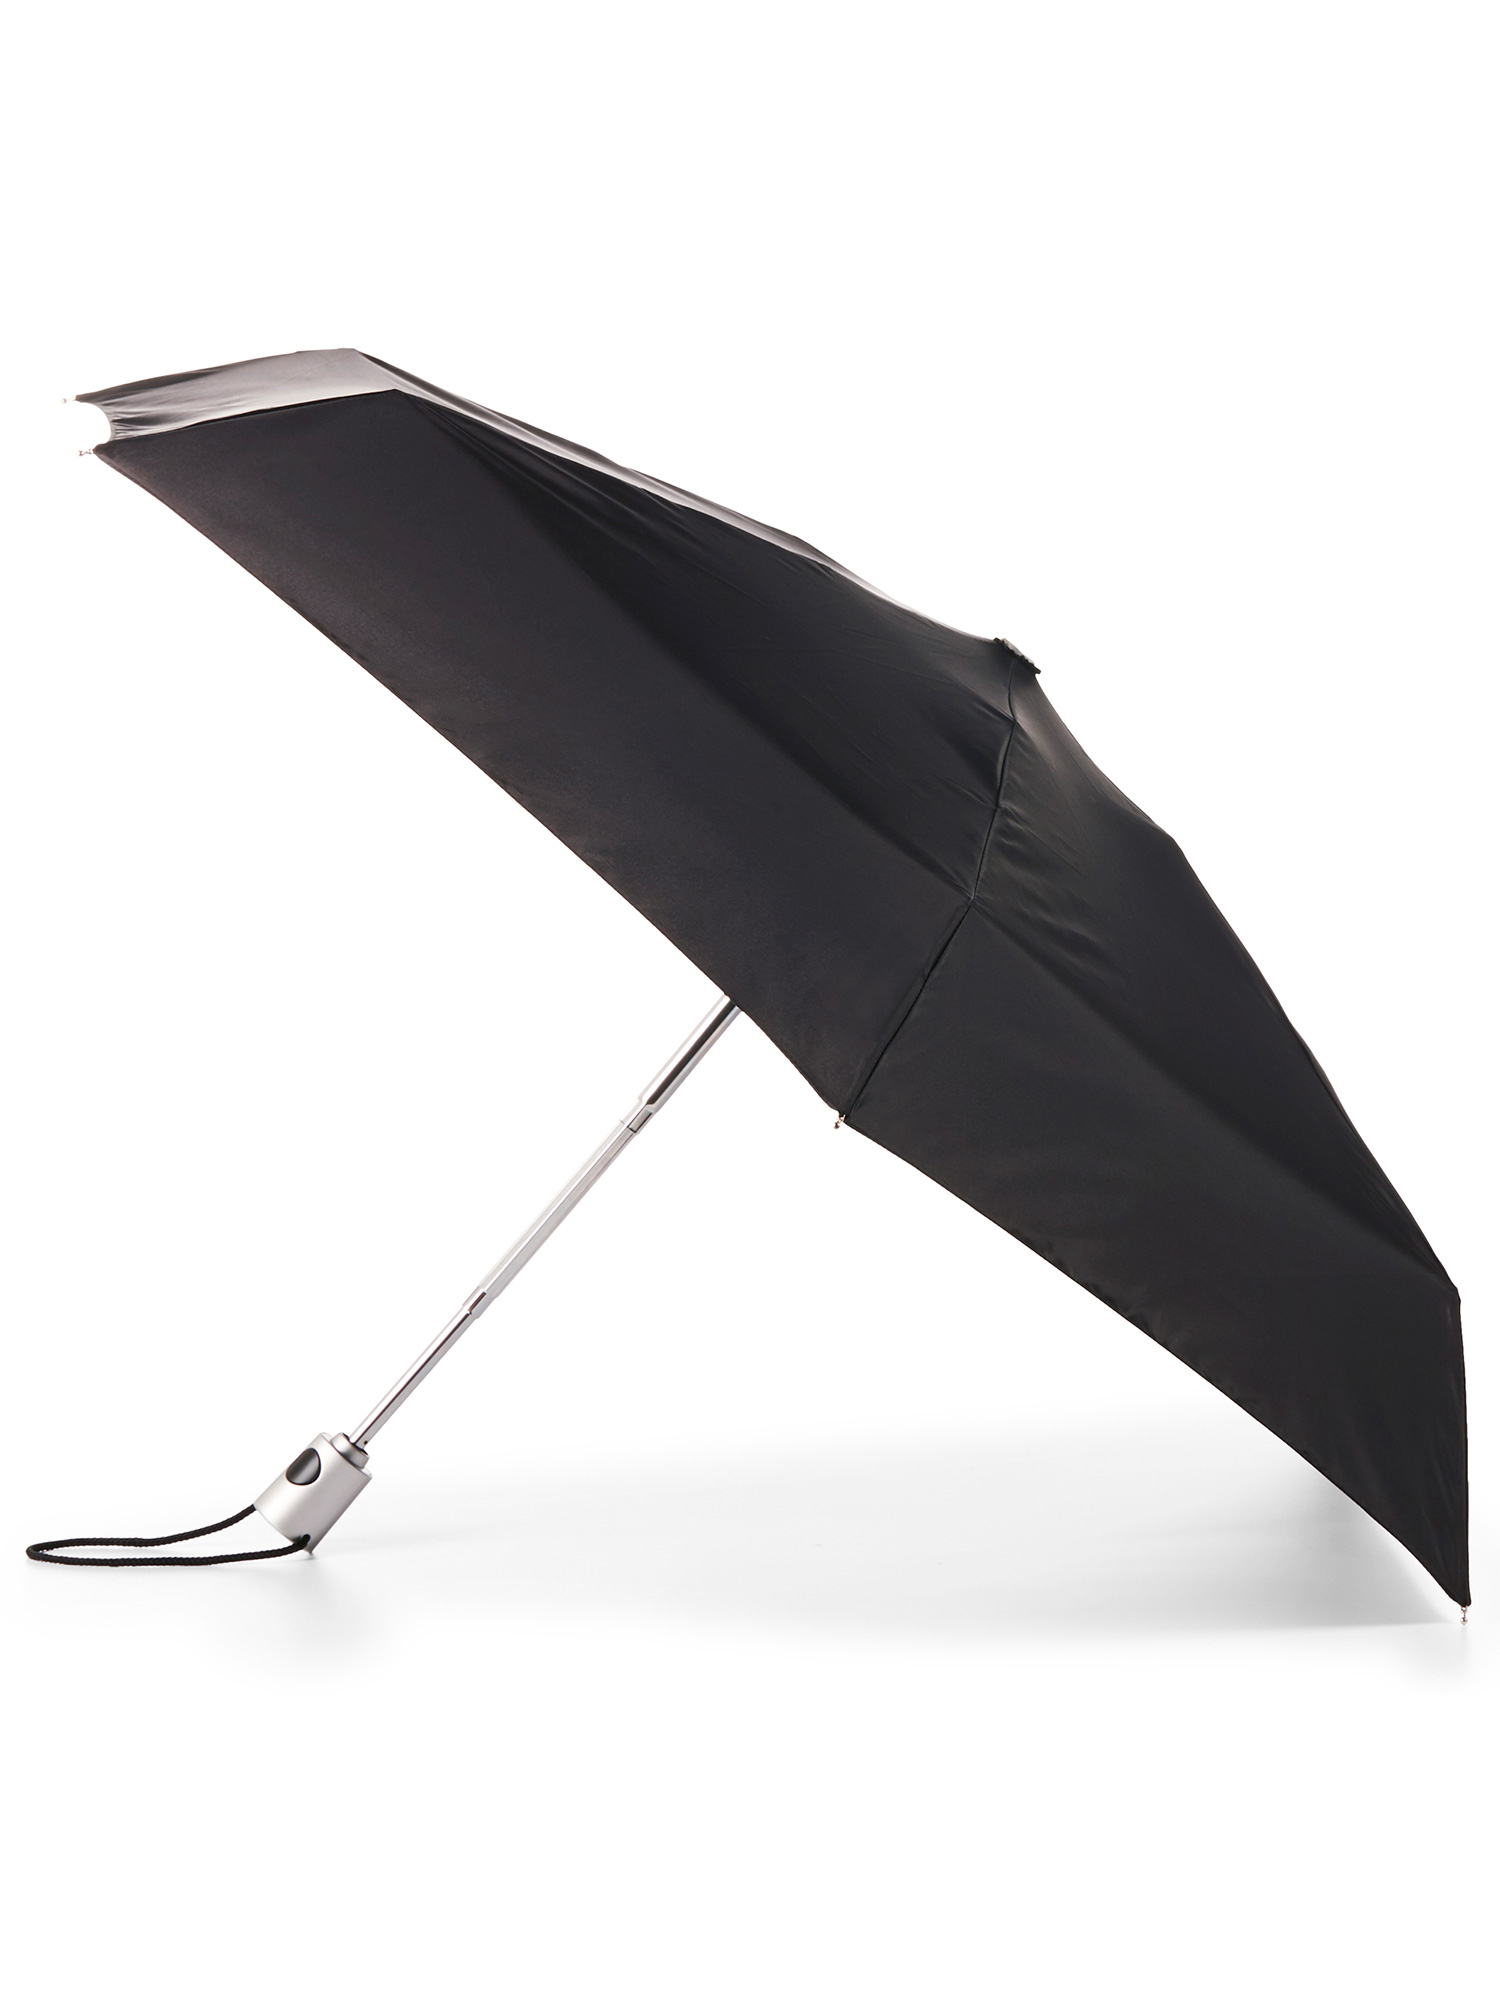 Totes NeverWet® Auto-Open Mini Purse Umbrella, 39""